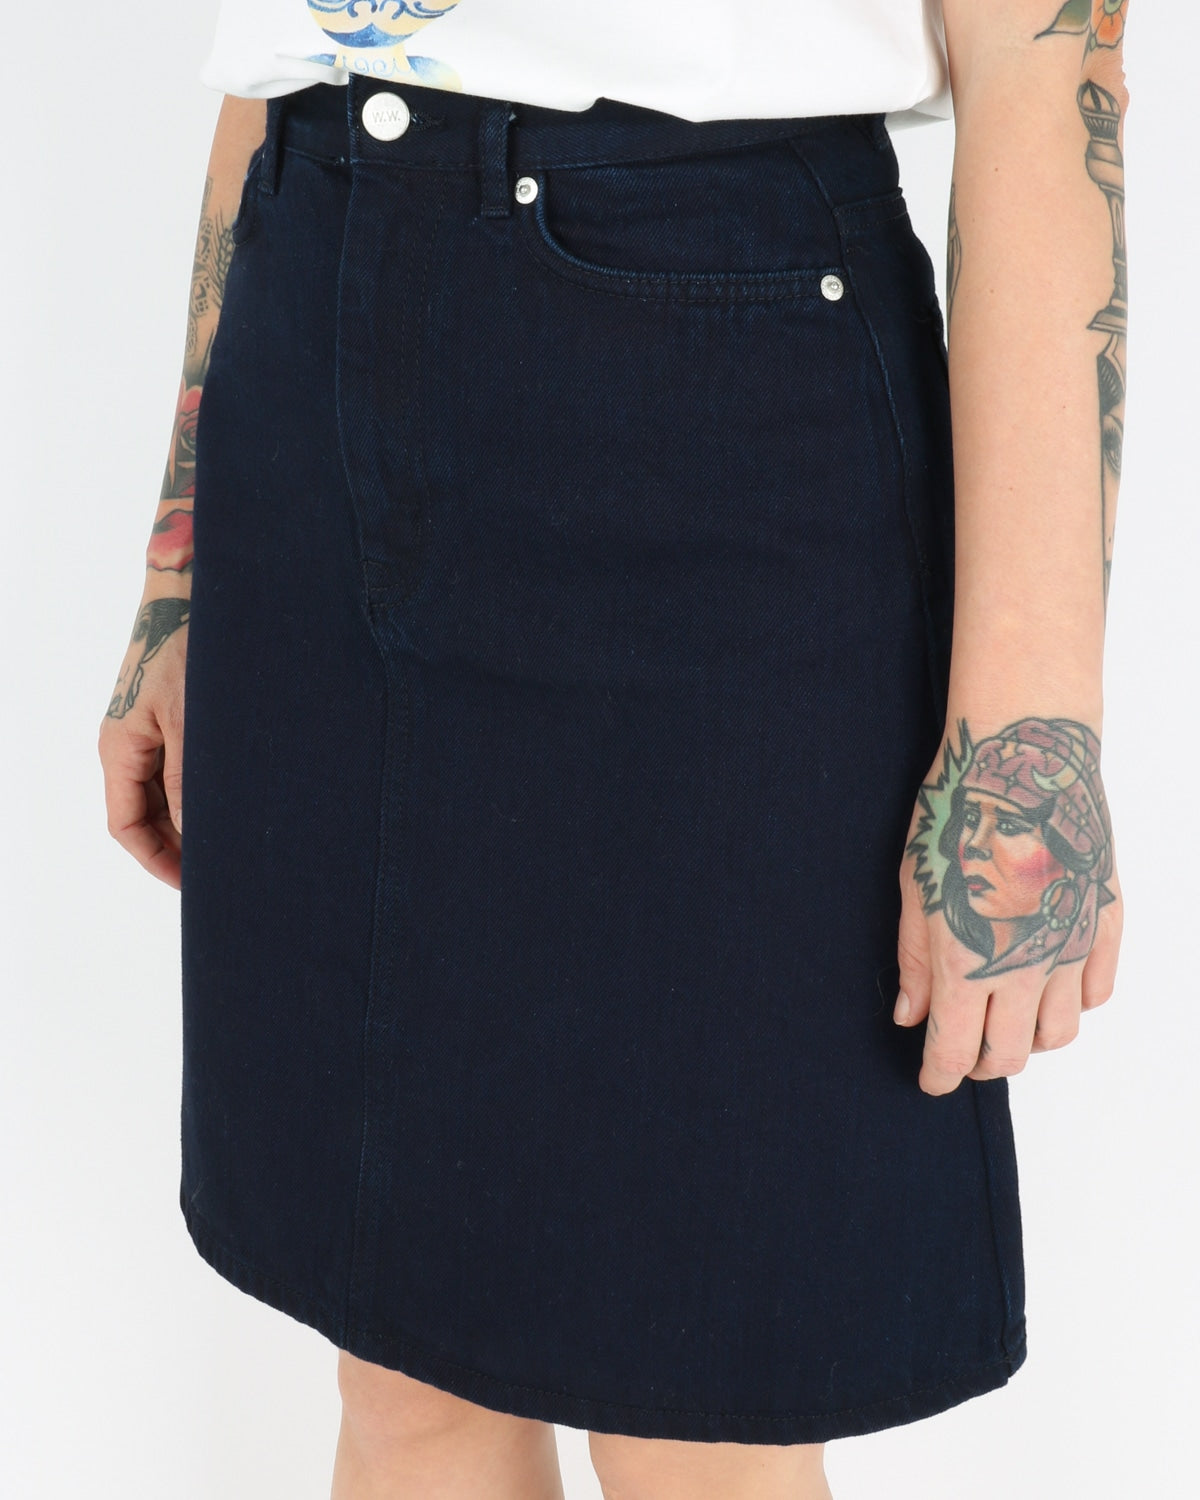 wood wood_ynes skirt_dark rinse_5_5